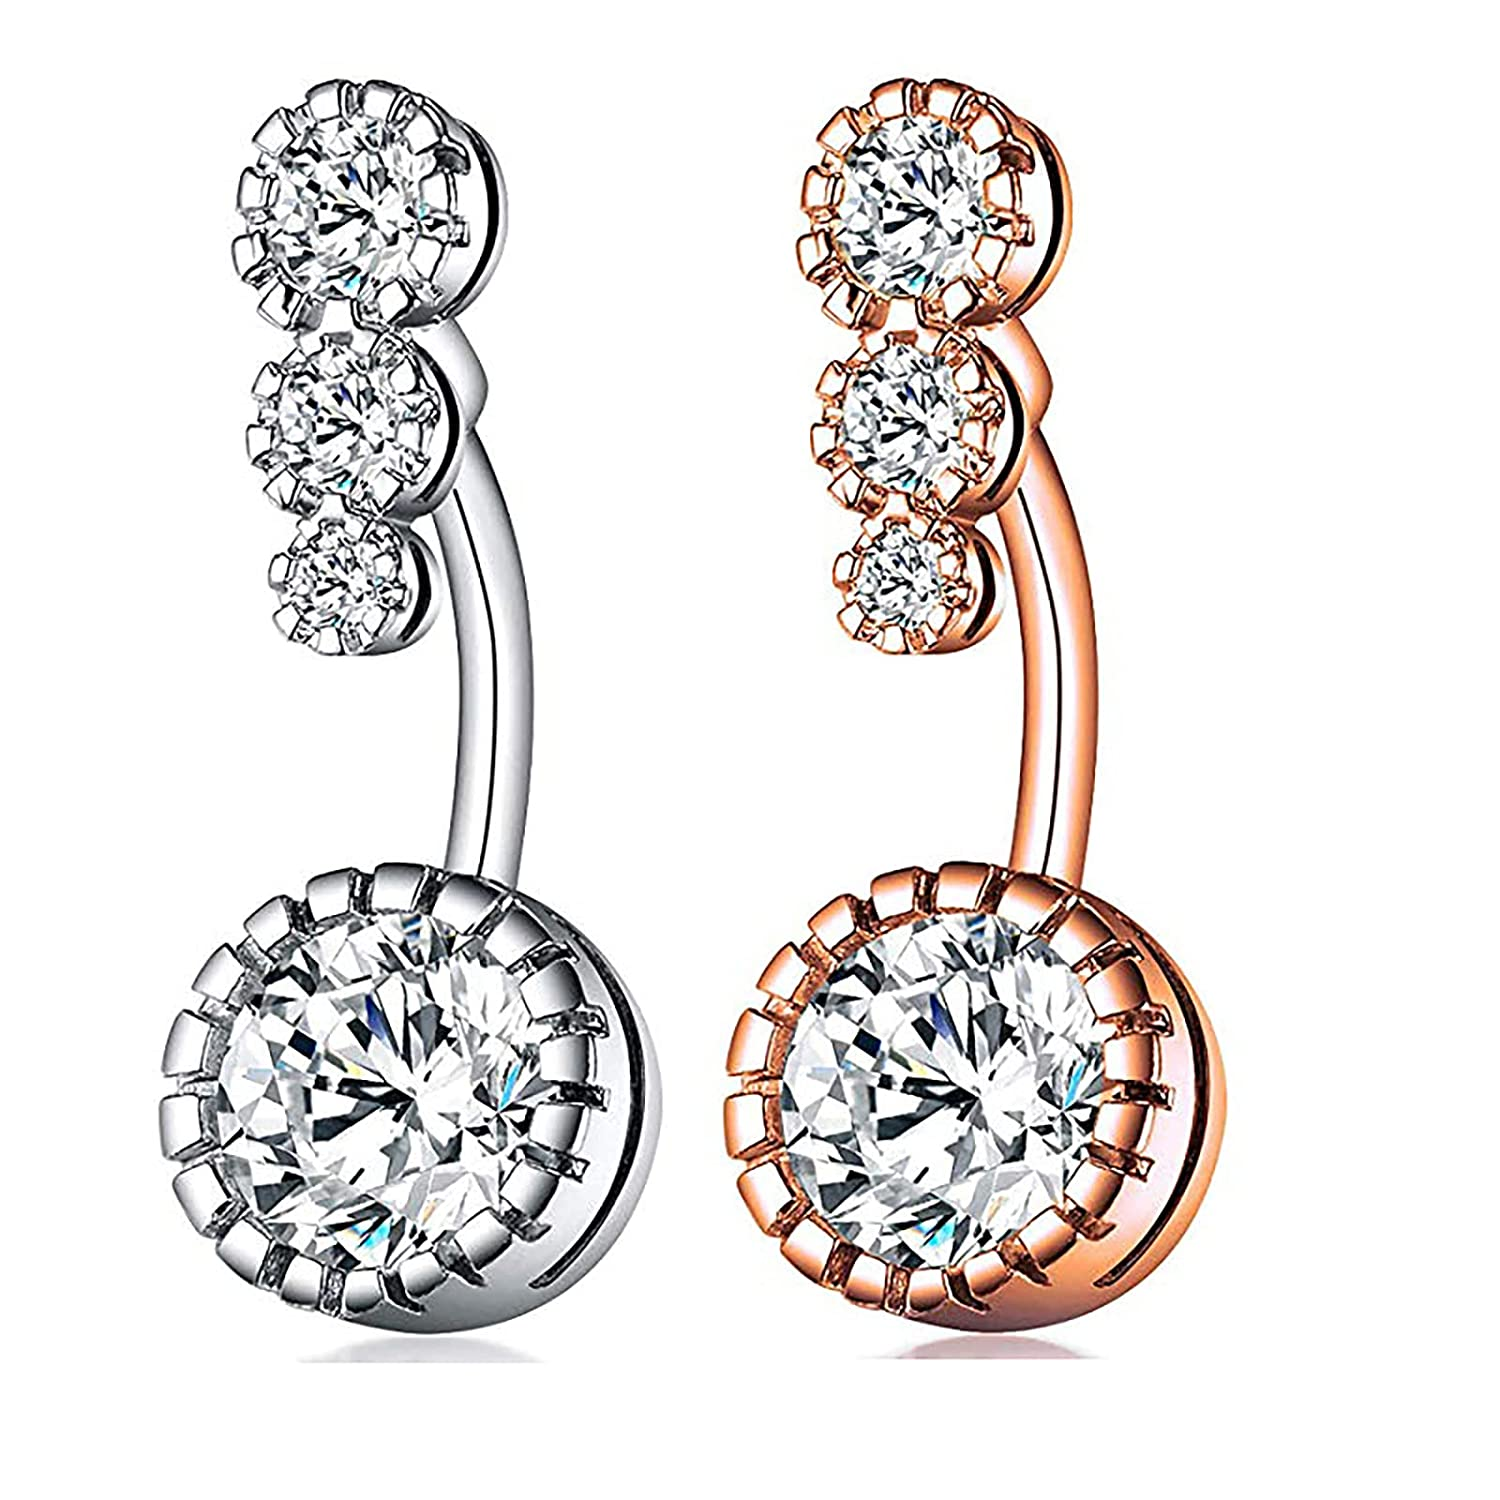 Belly Button Rings for Women Surgical Steel Belly Button Rings Dangle for Girls Pregnancy Belly Button Body Jewelry (BB-R-12)